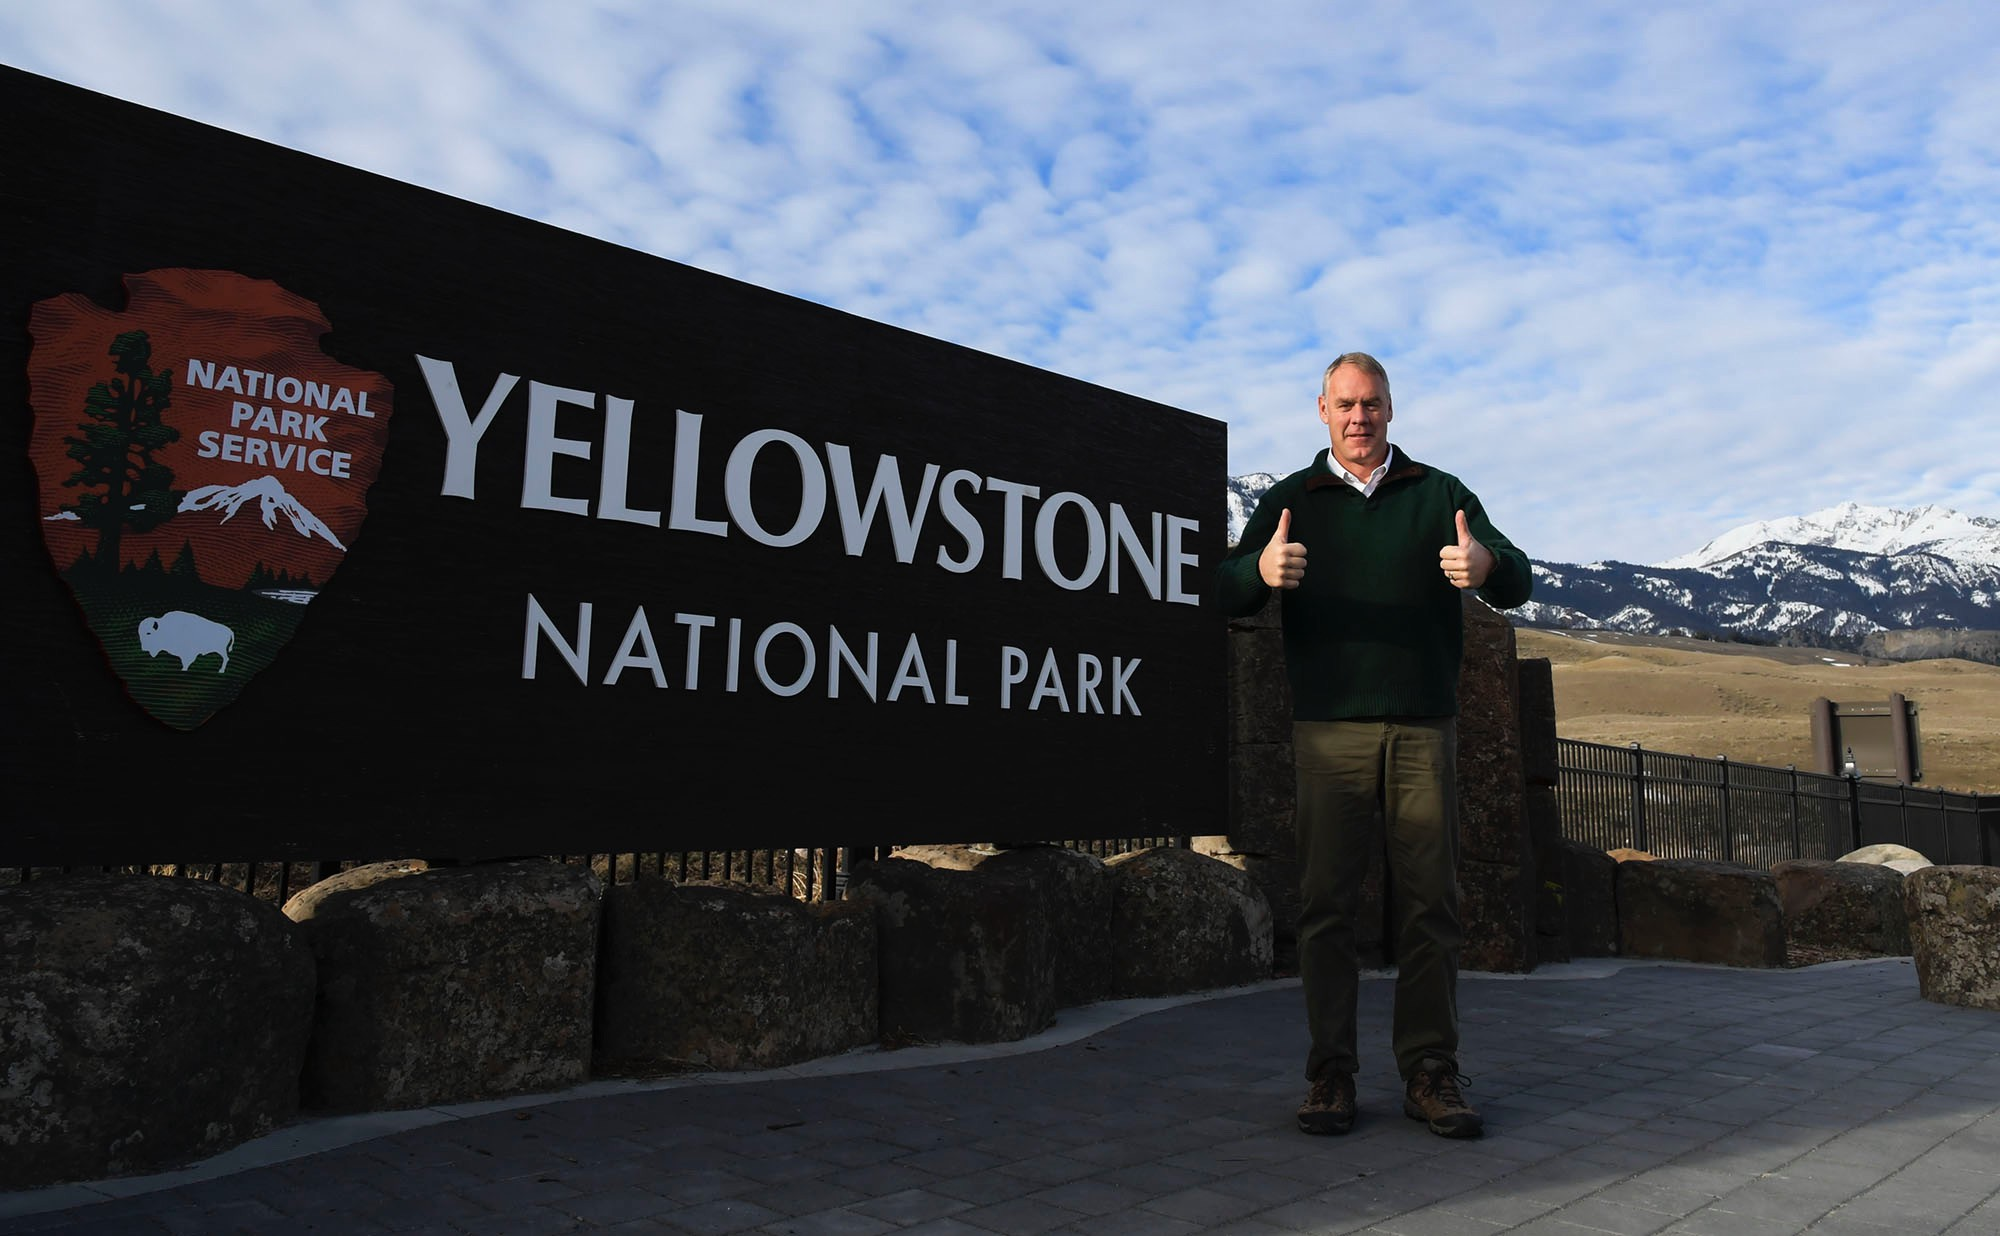 Why Outsourcing National Park Staff Would Be a Disaster